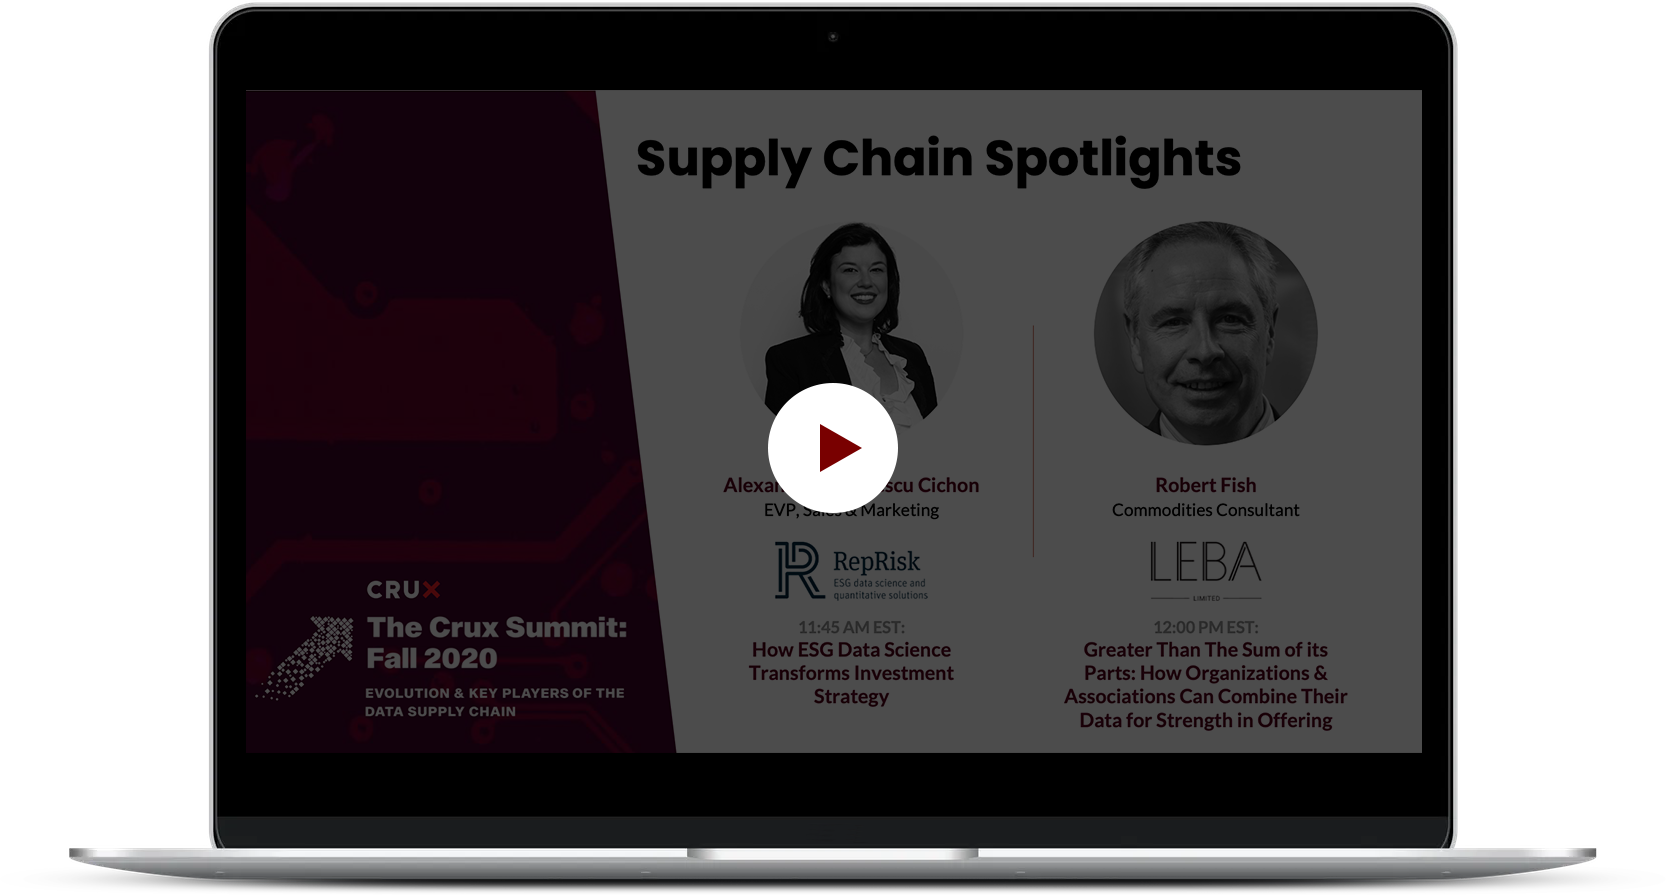 Crux_TCS_SupplyChainSpotlights_15